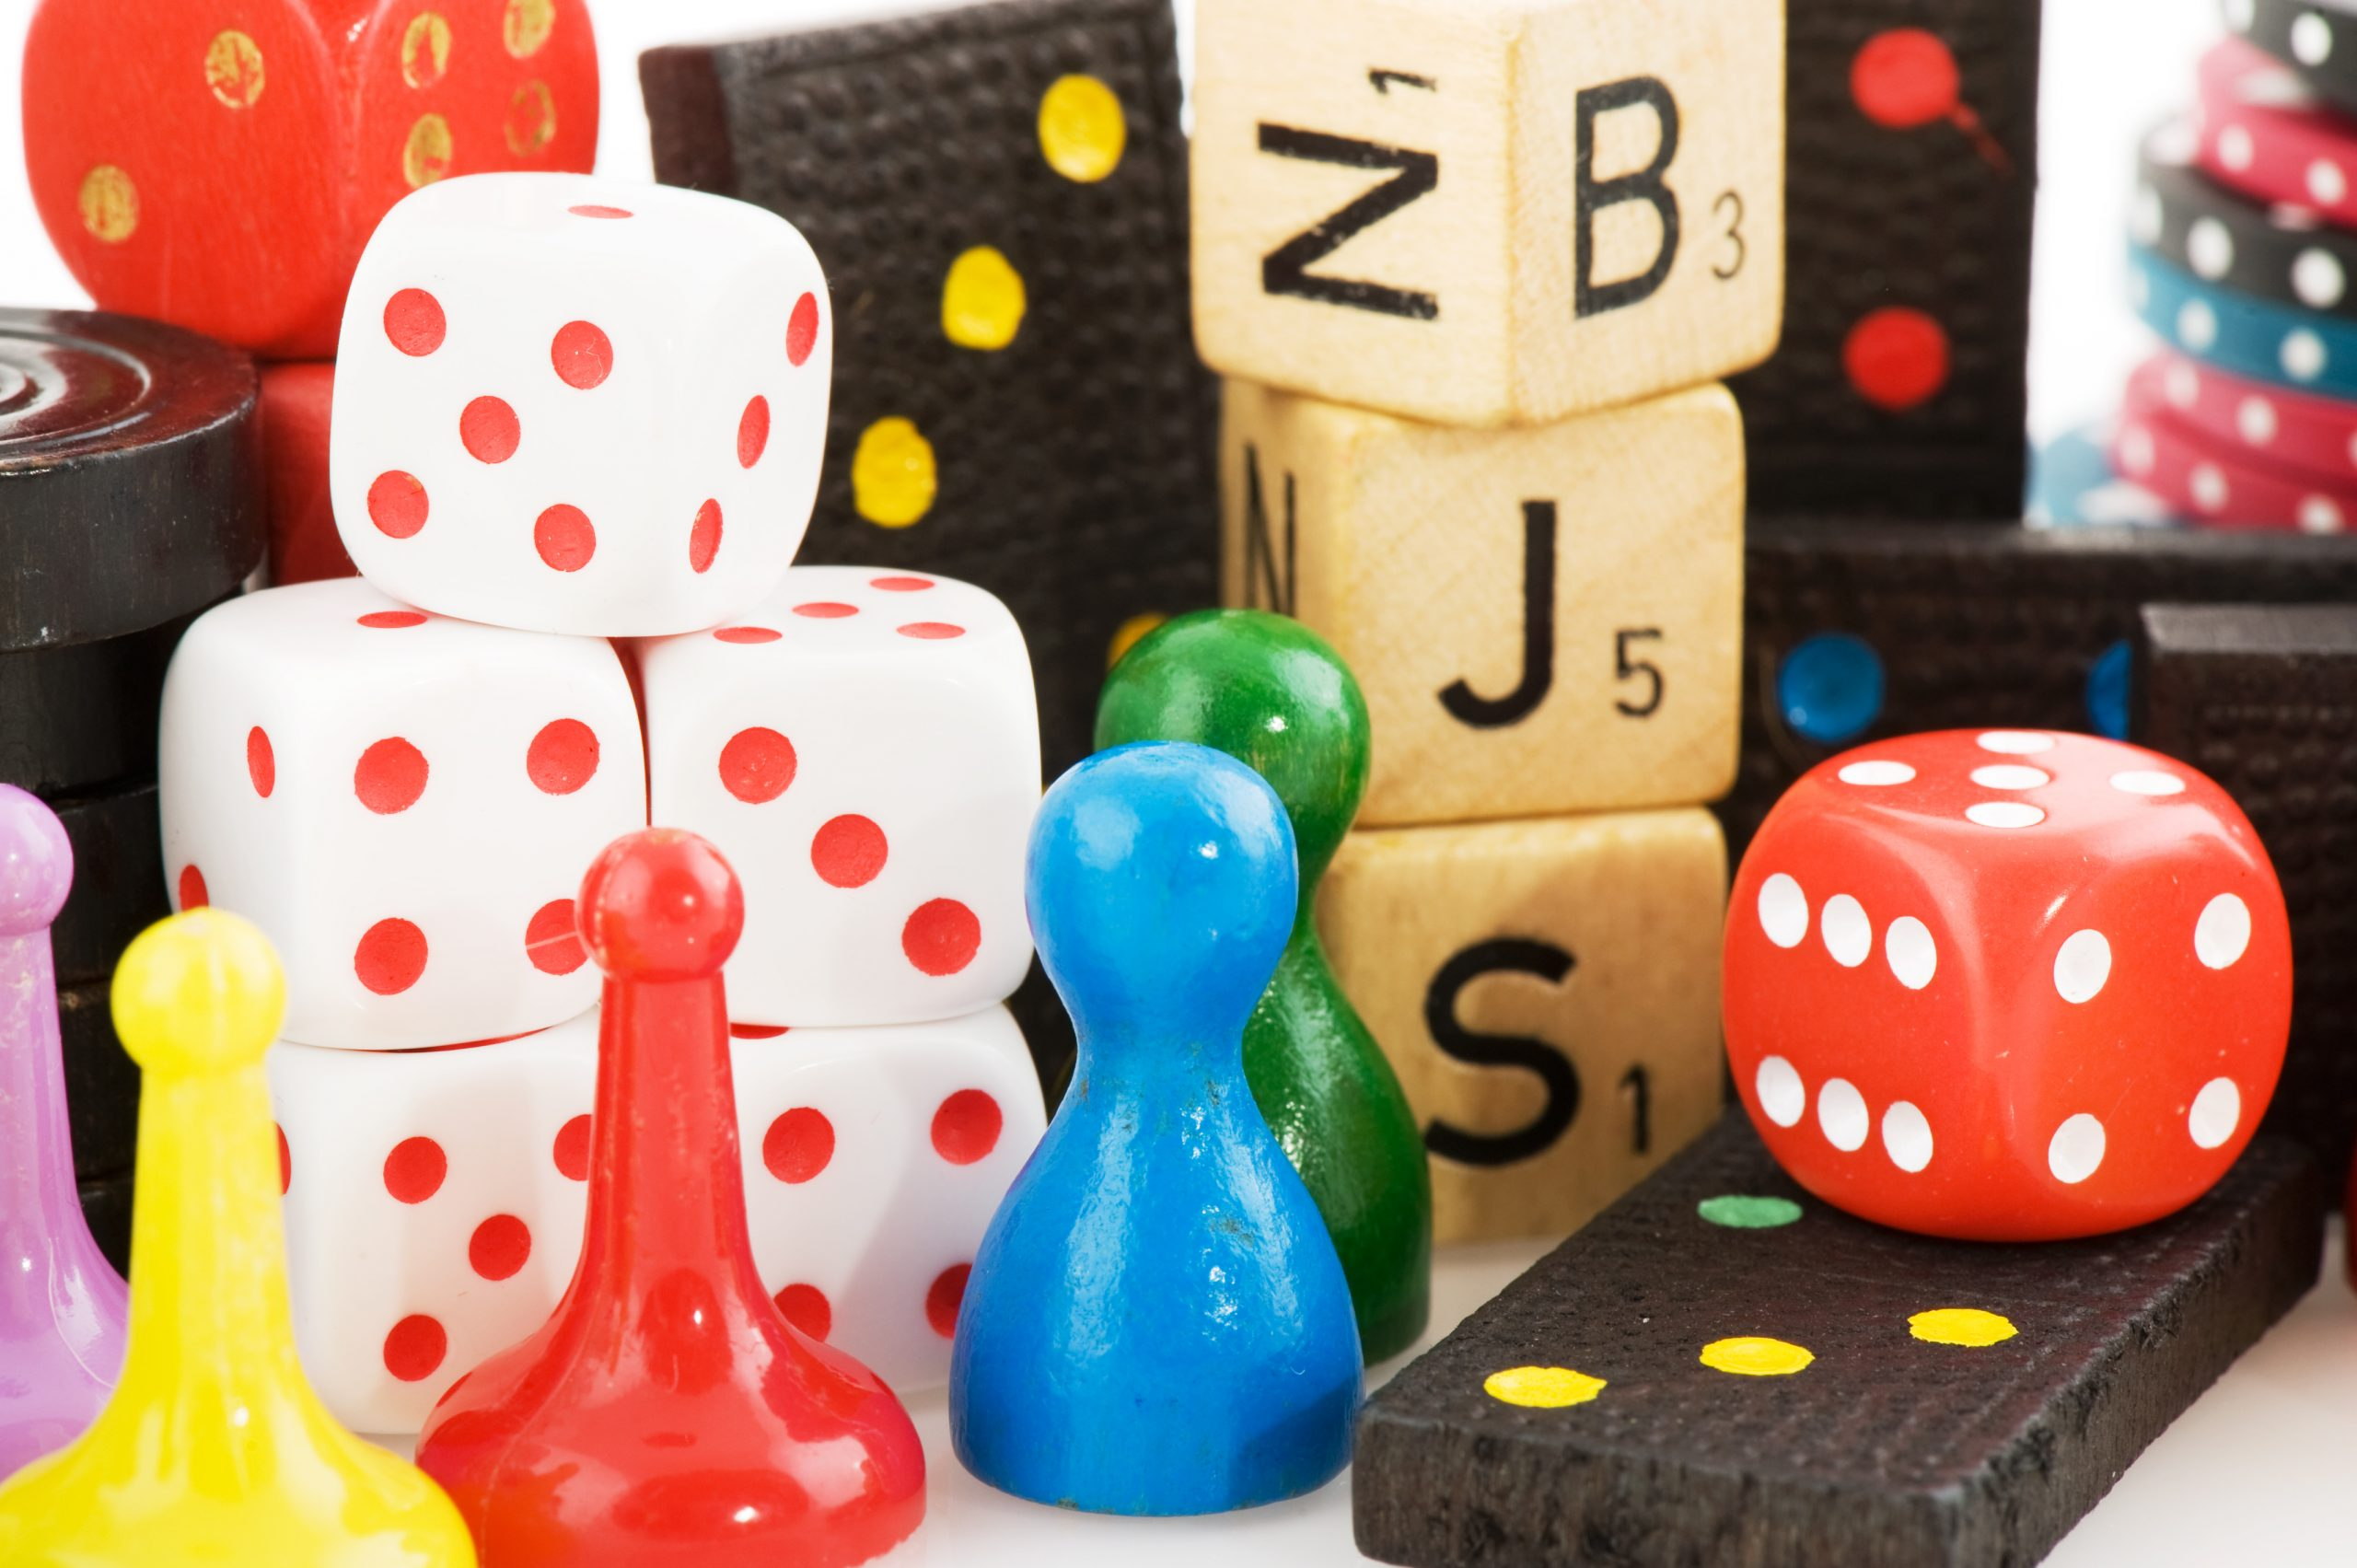 spring break games and puzzles to do at home